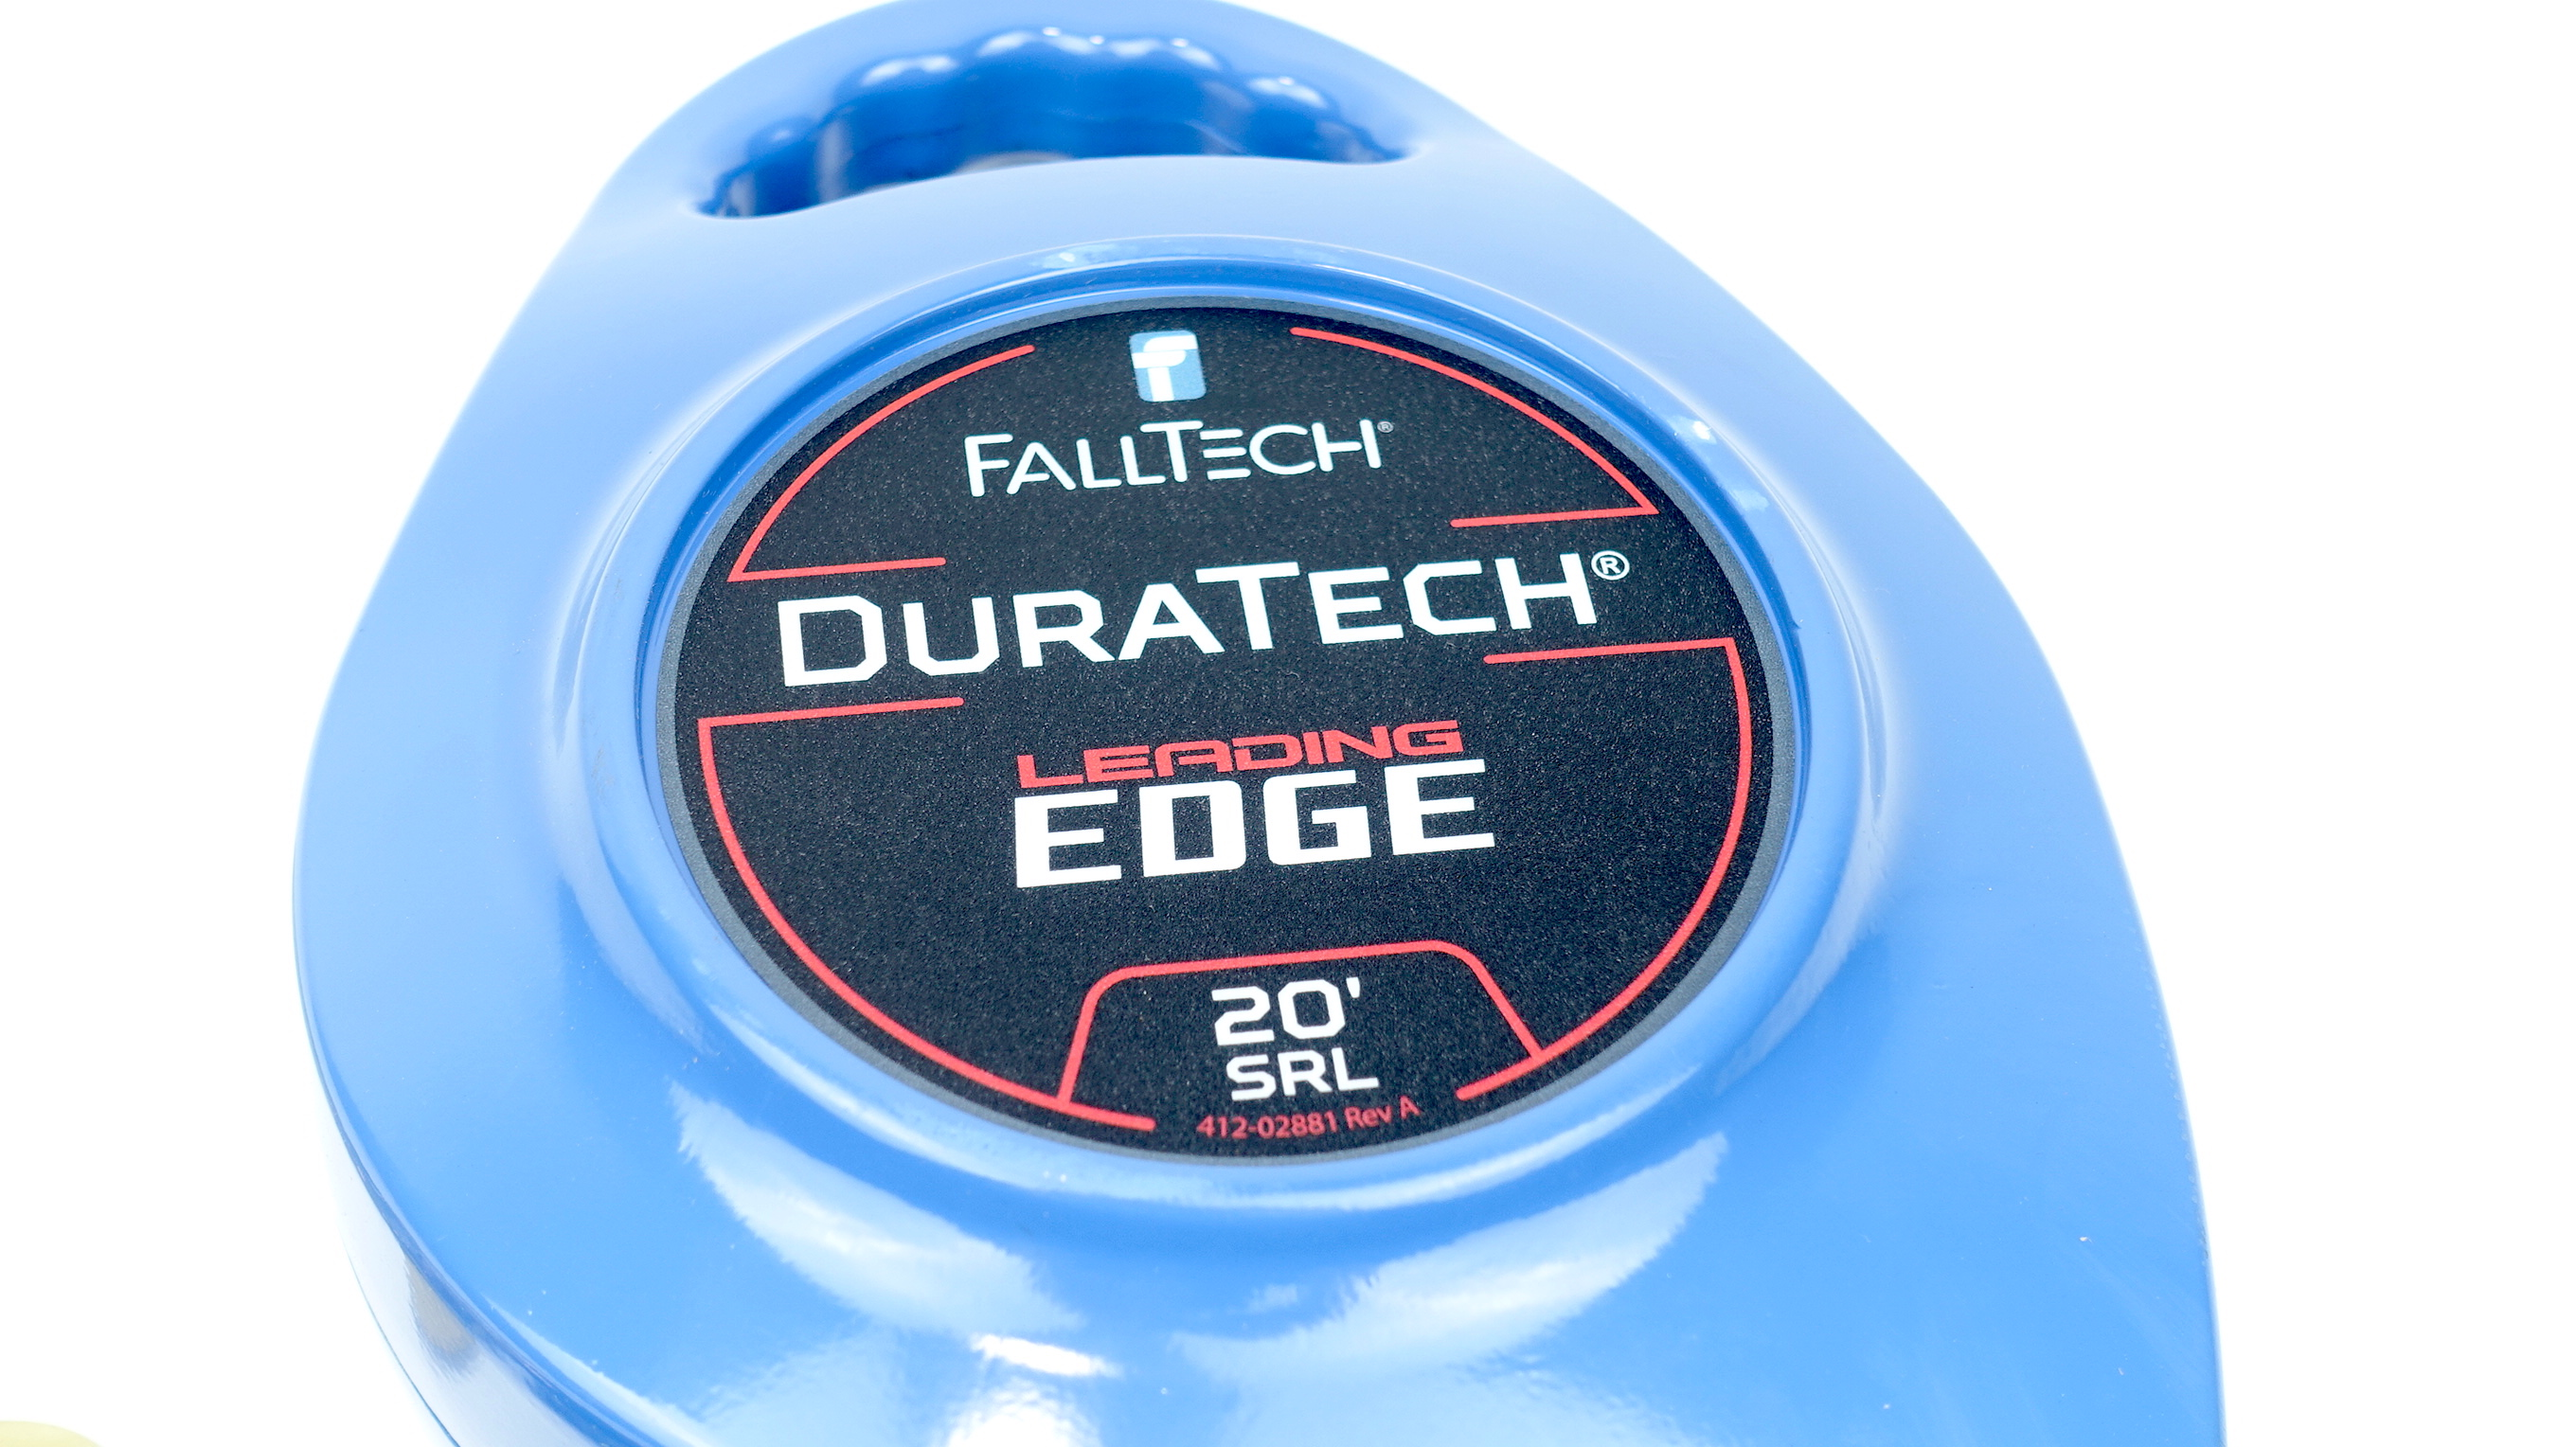 """FallTech 20' Leading Edge 7/32"""" Cable SRD DuraTech Steel Swivel Snaphook 7227CLE - image 7"""